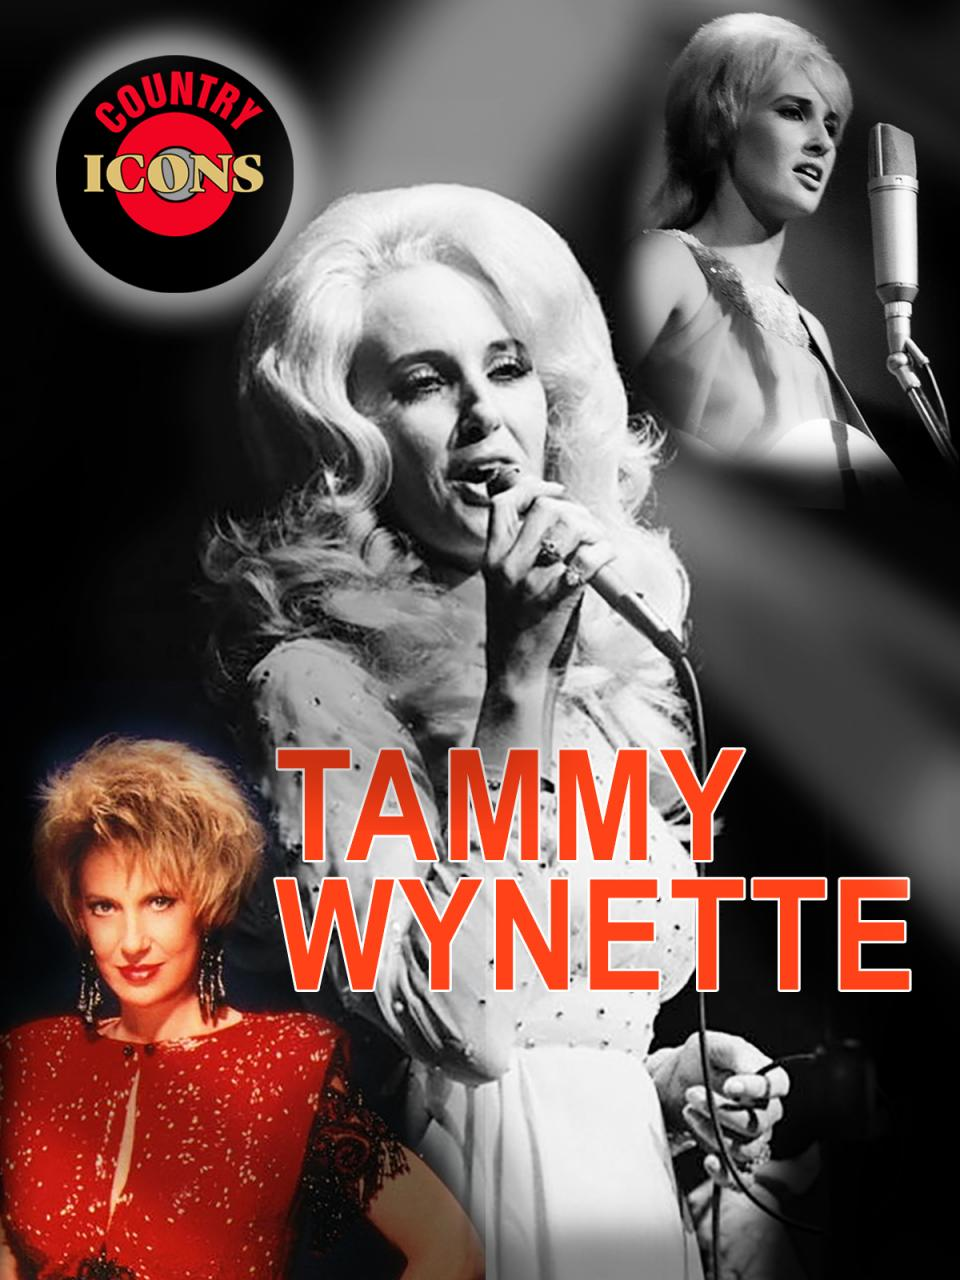 Country Icons: Tammy Wynette